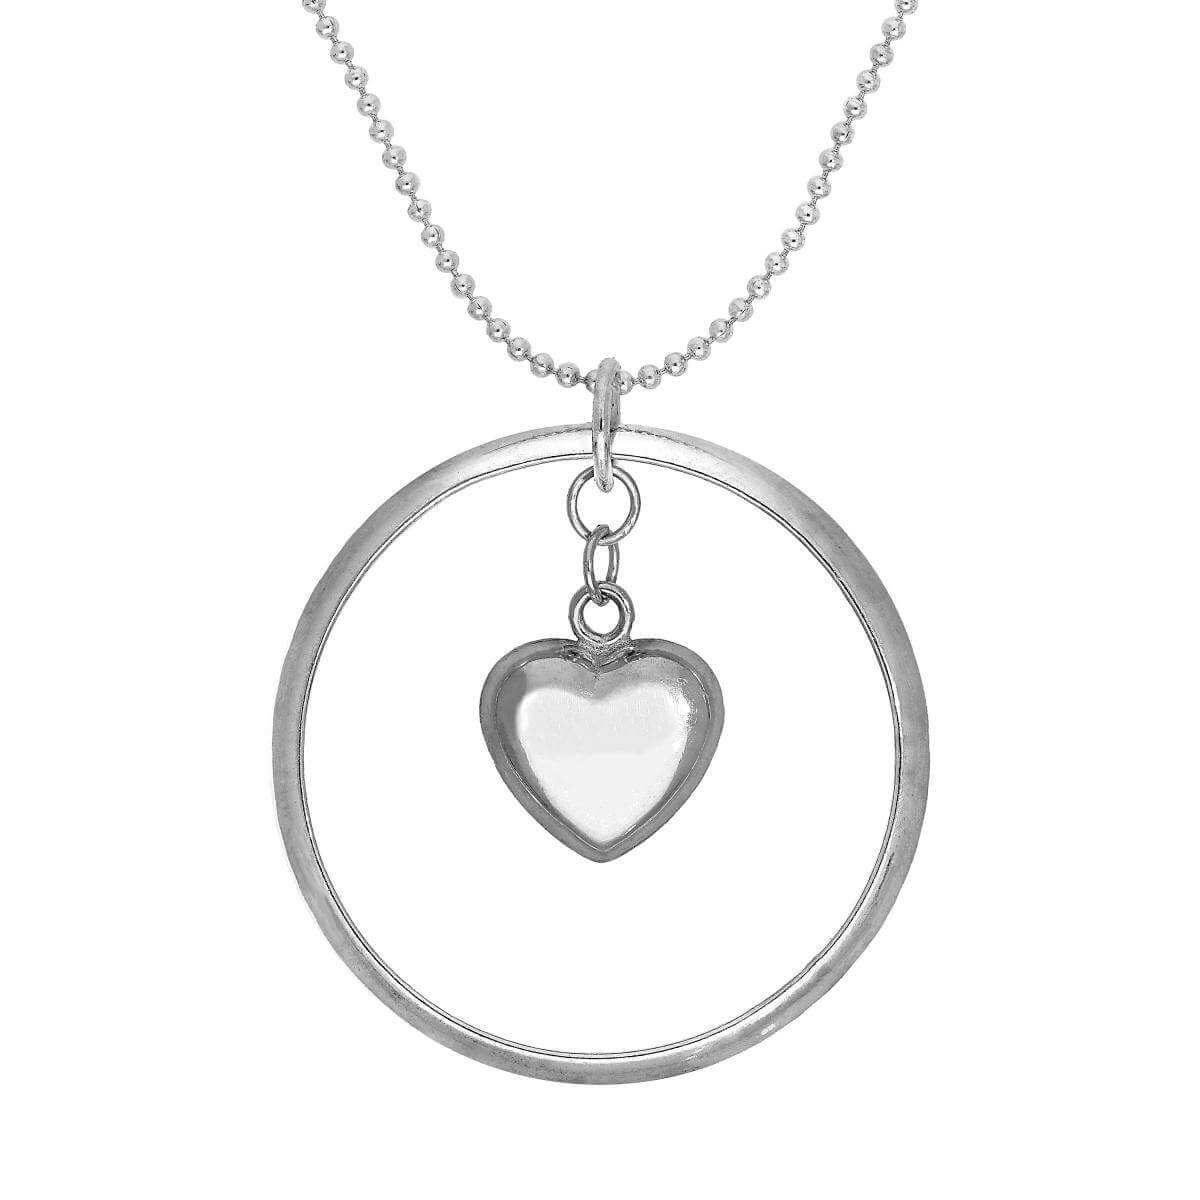 Sterling Silver Karma Moments Puffed Heart Pendant on Bead Chain Necklace